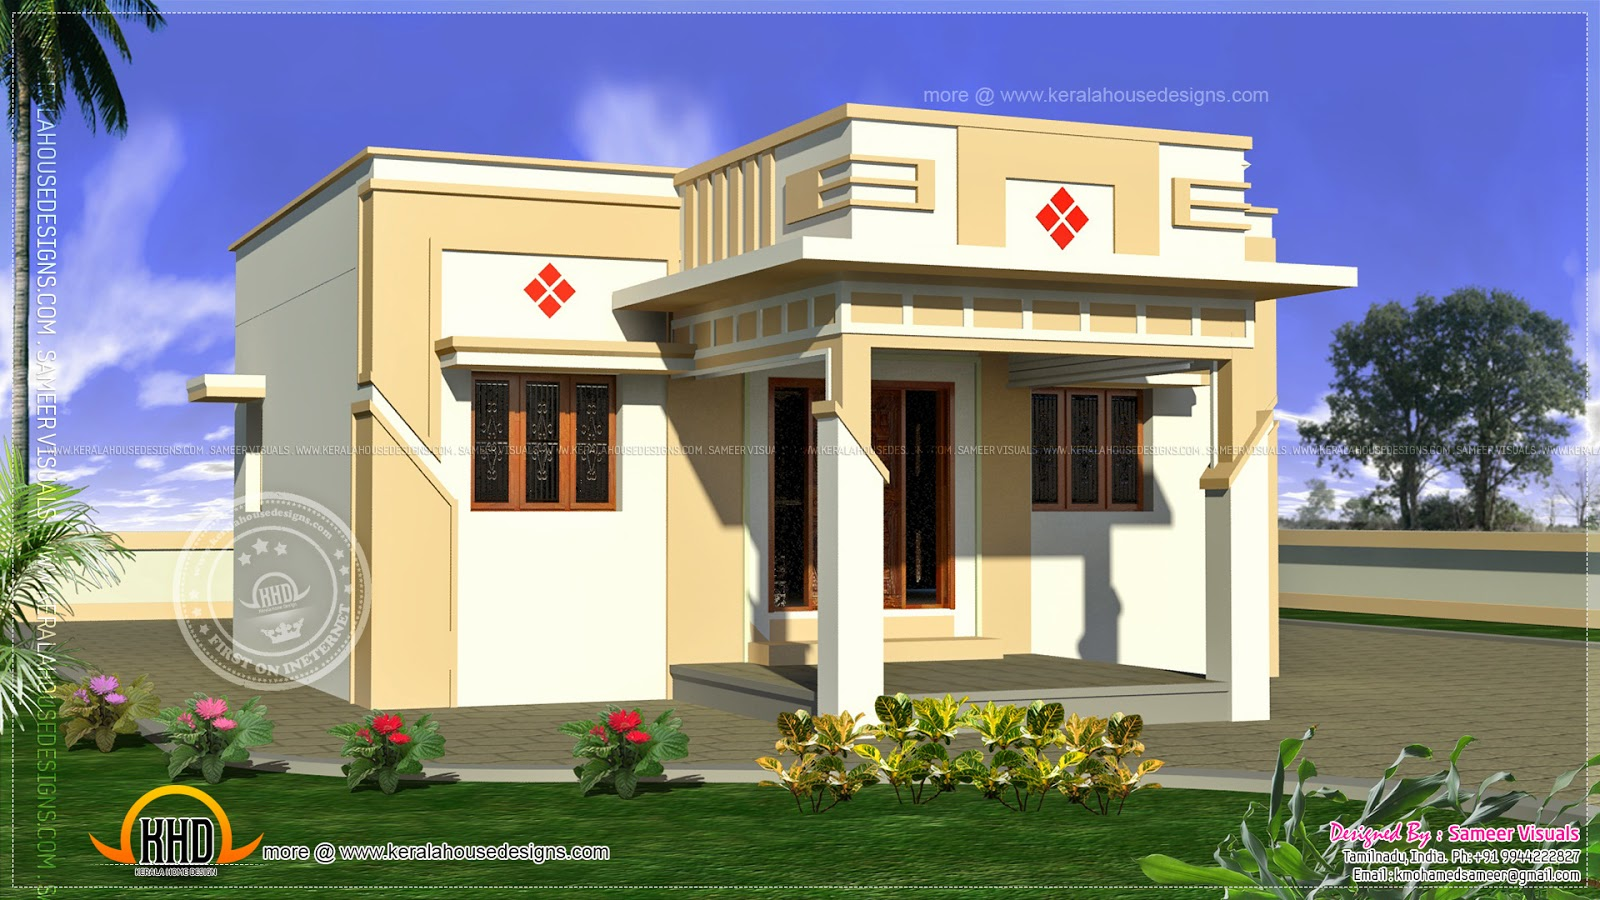 Low cost tamilnadu house kerala home design and floor plans for Bedroom designs tamilnadu